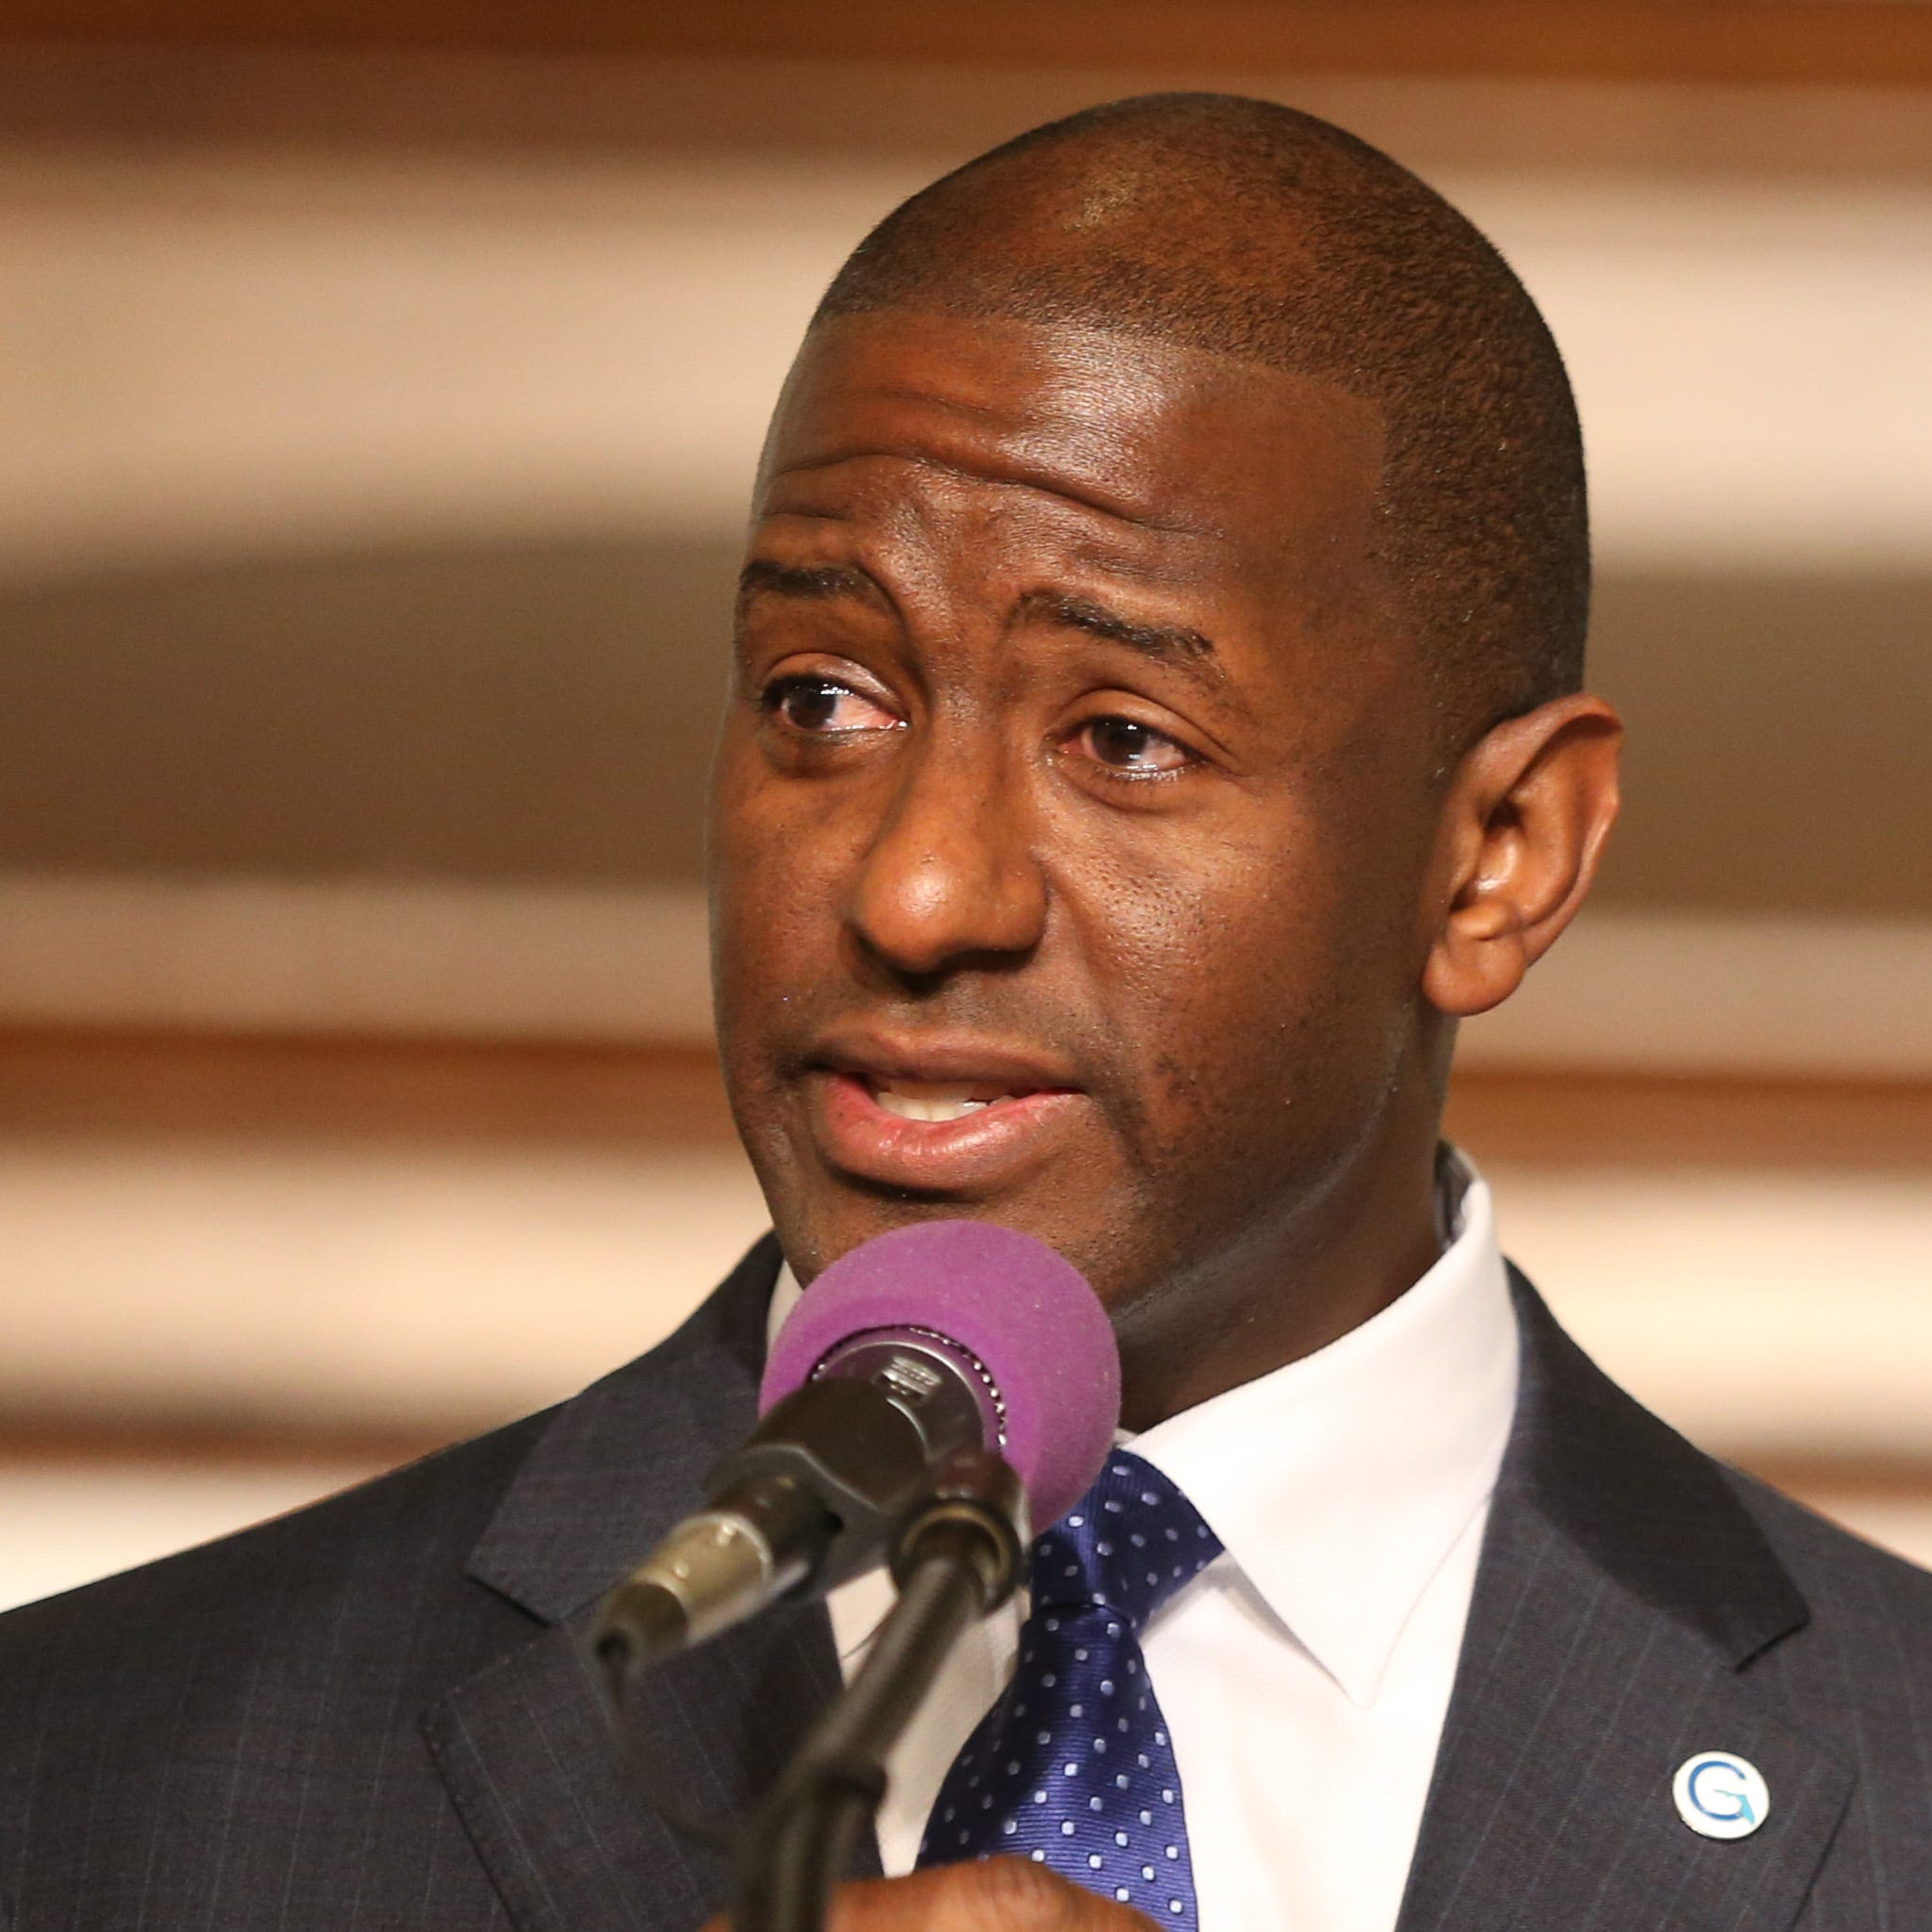 Andrew Gillum tells church 'final count is not done' before heading to recount ground zero